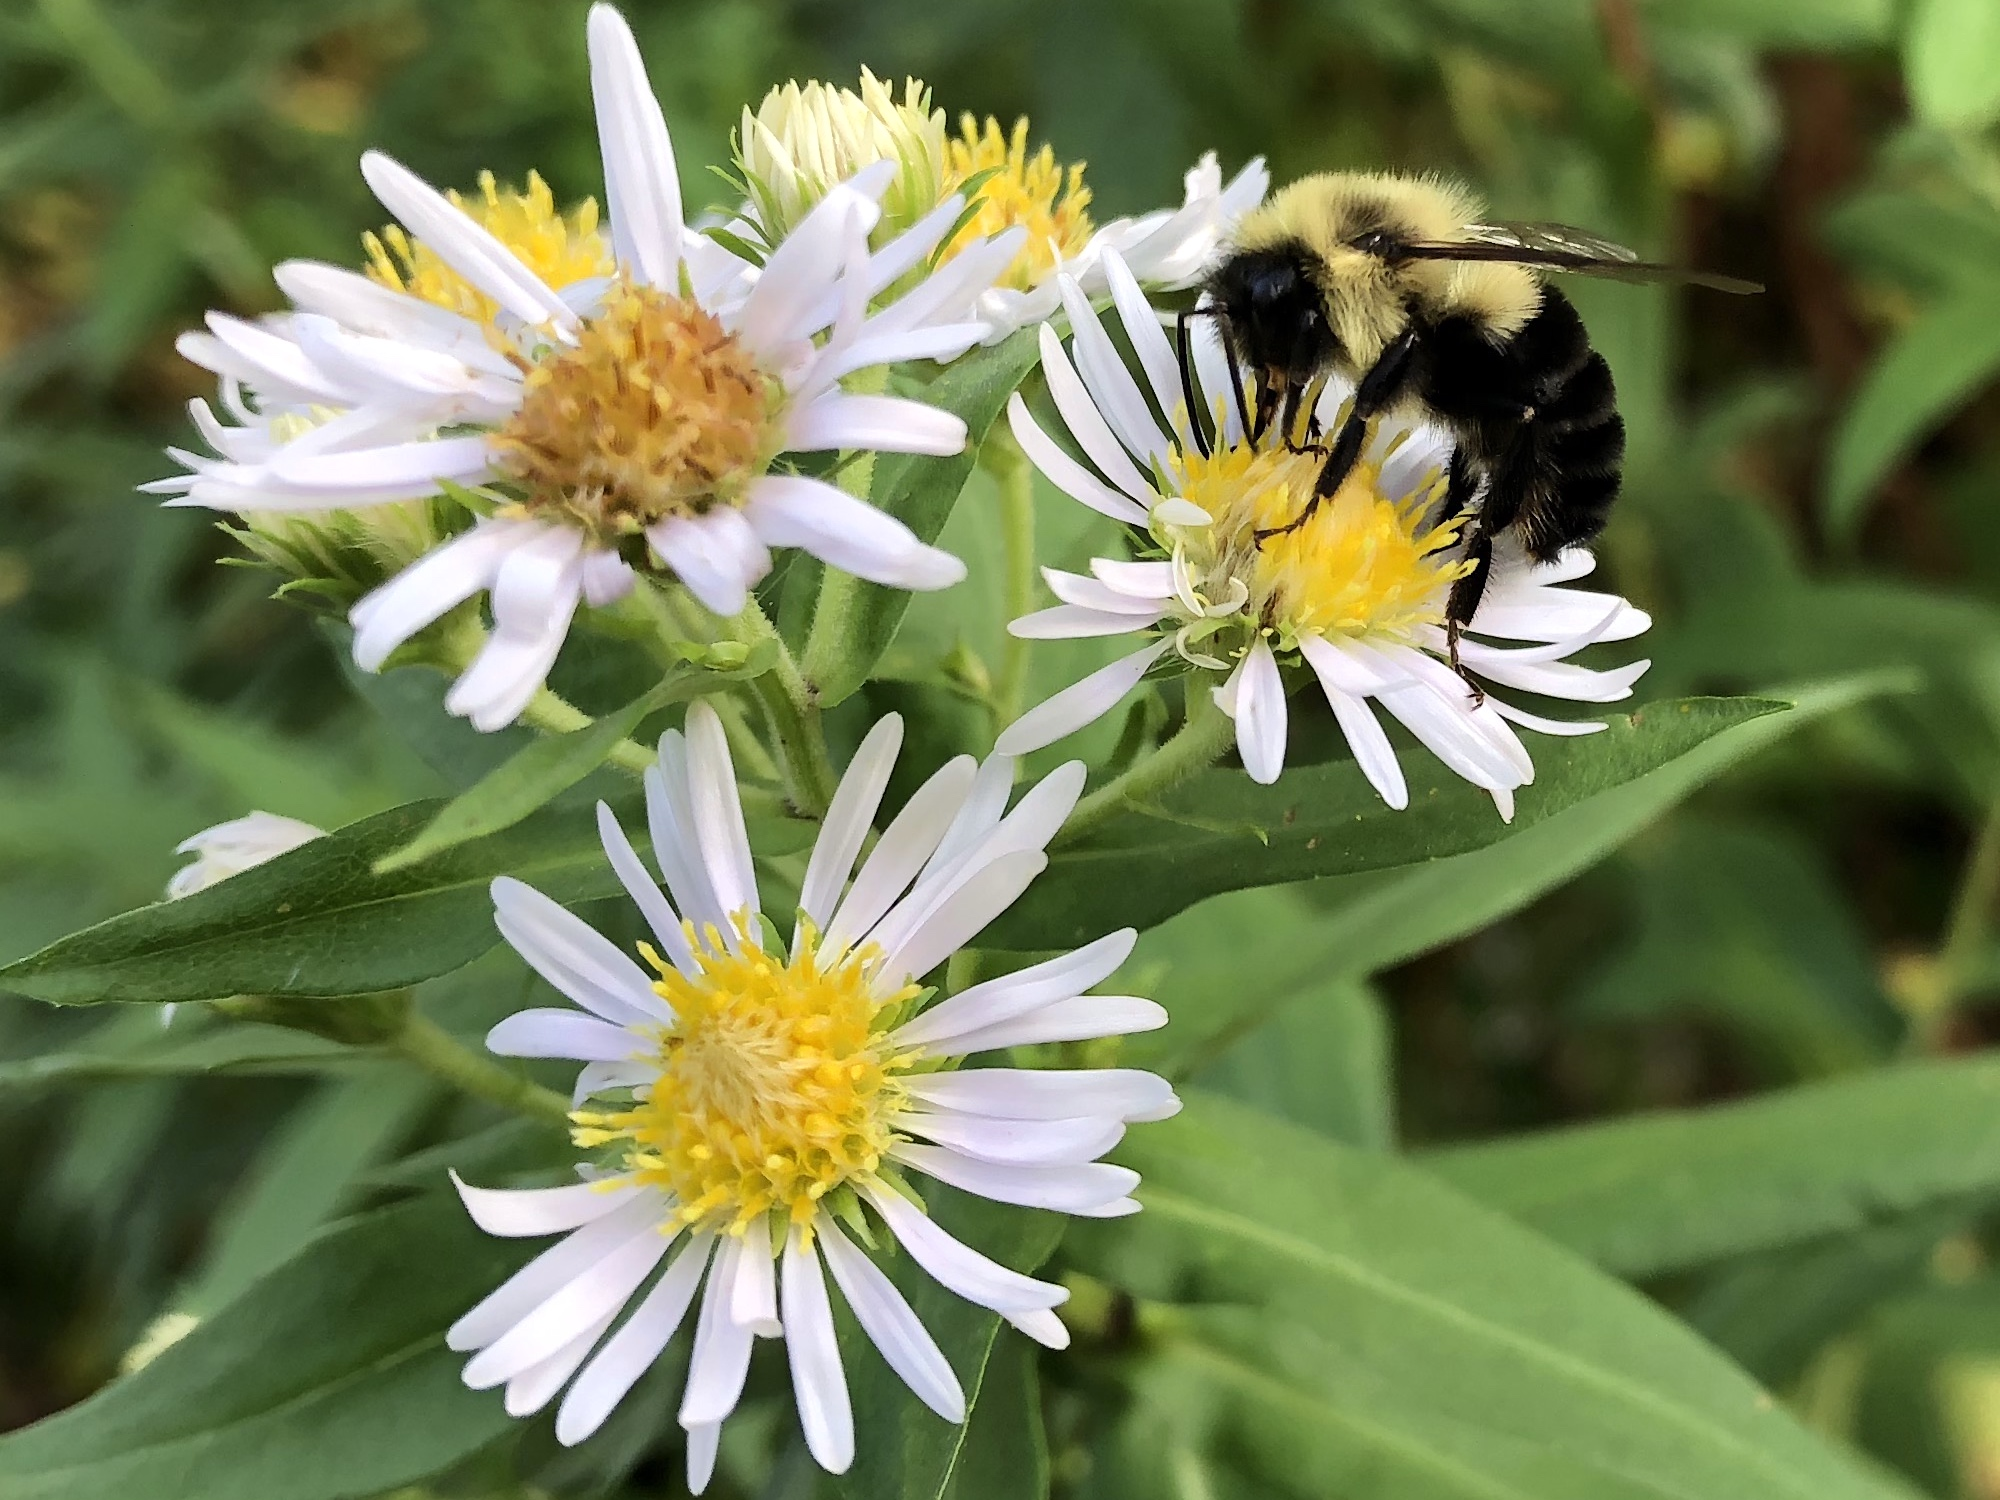 Bumblebee on Aster on August 20, 2018.